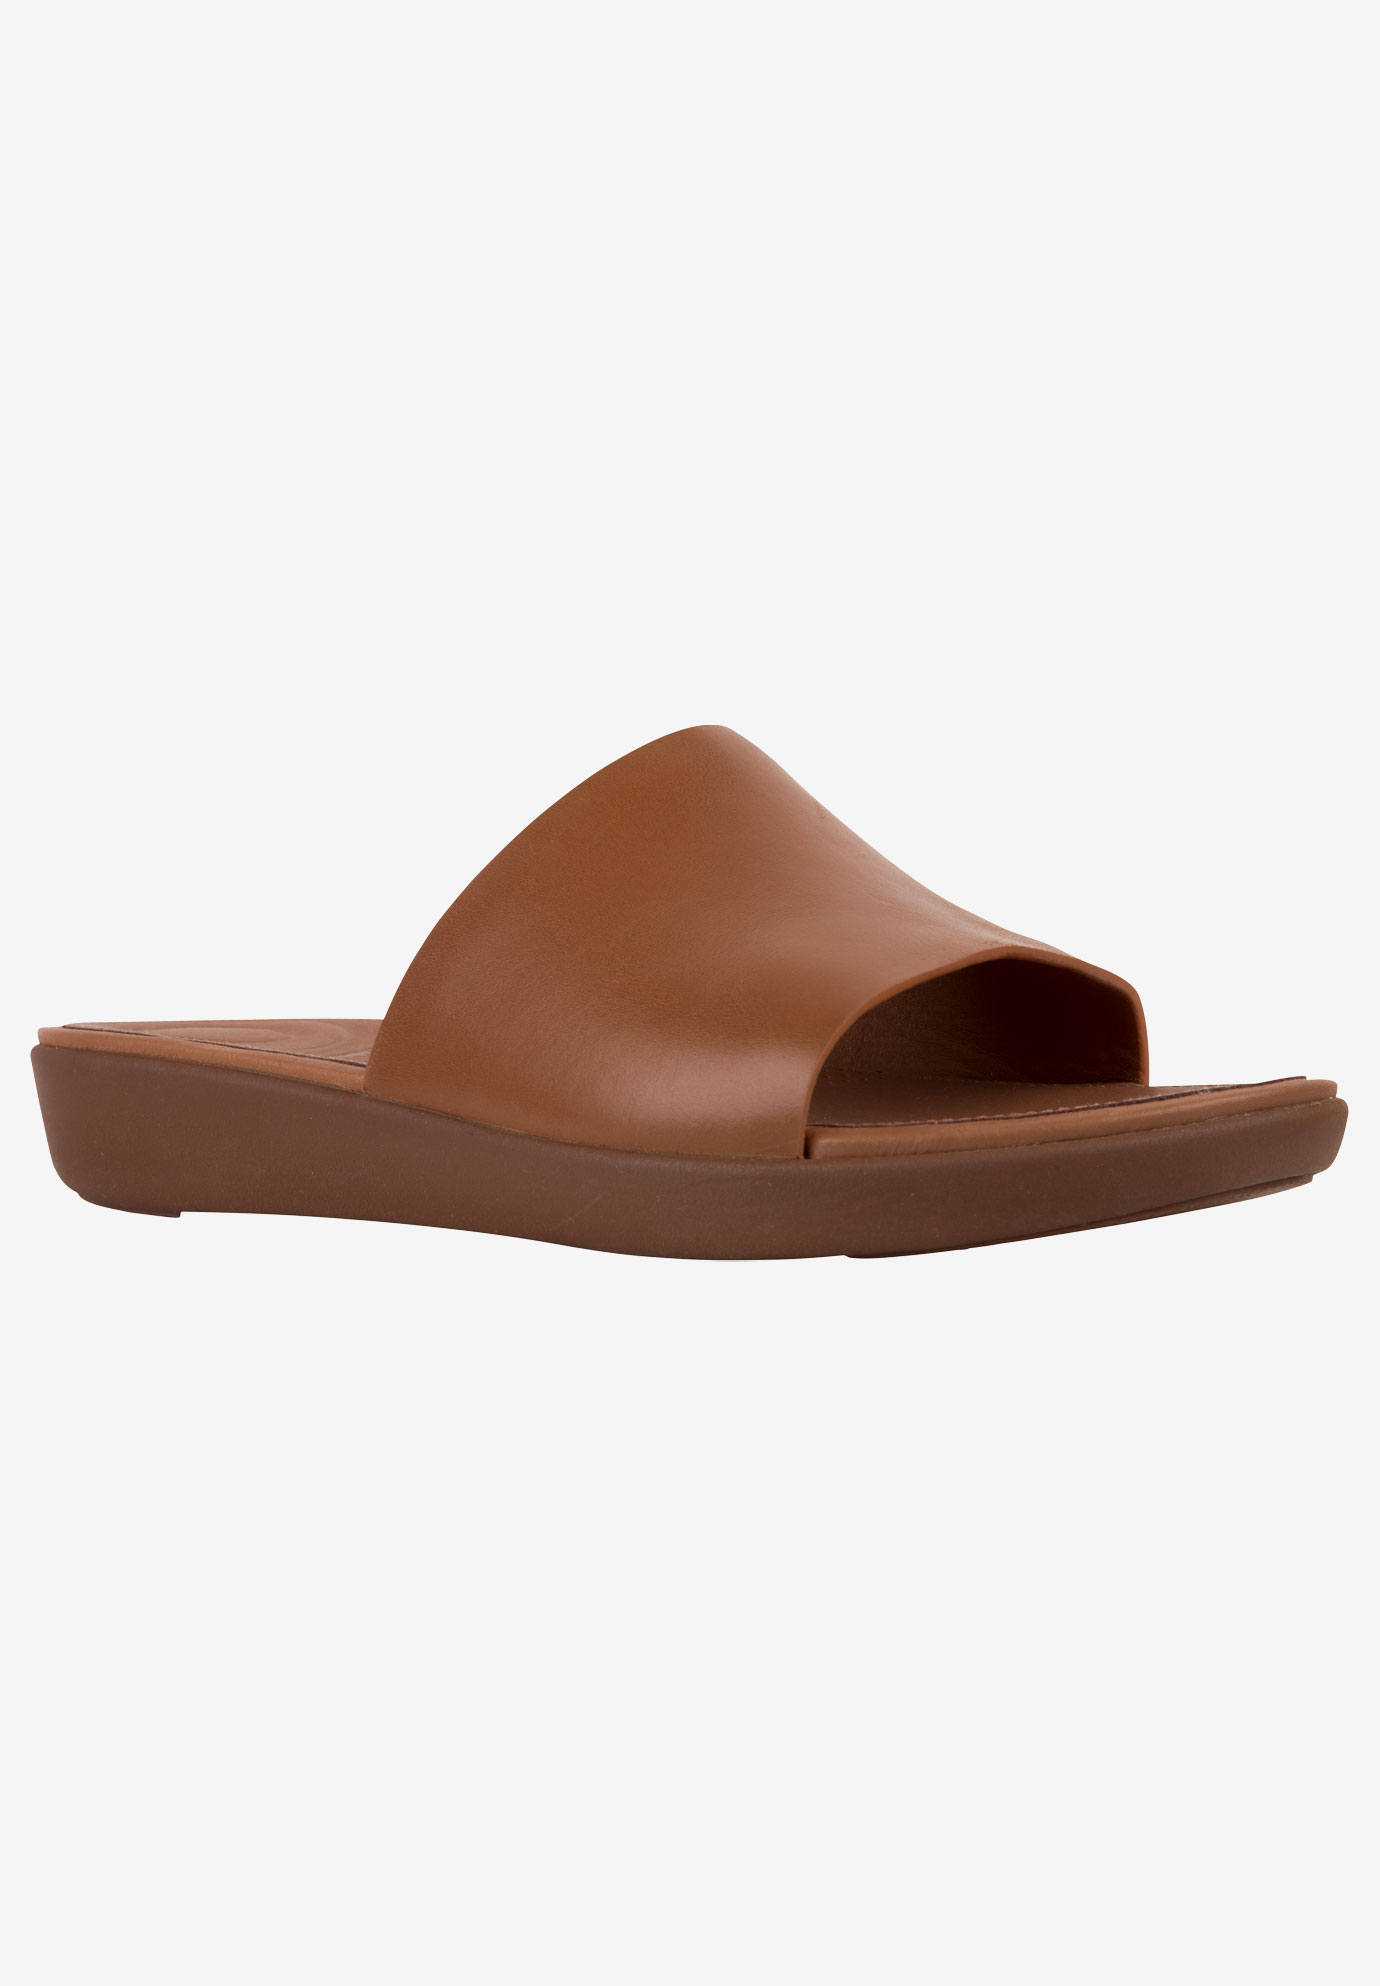 Sola Slide Sandal by FitFlop,